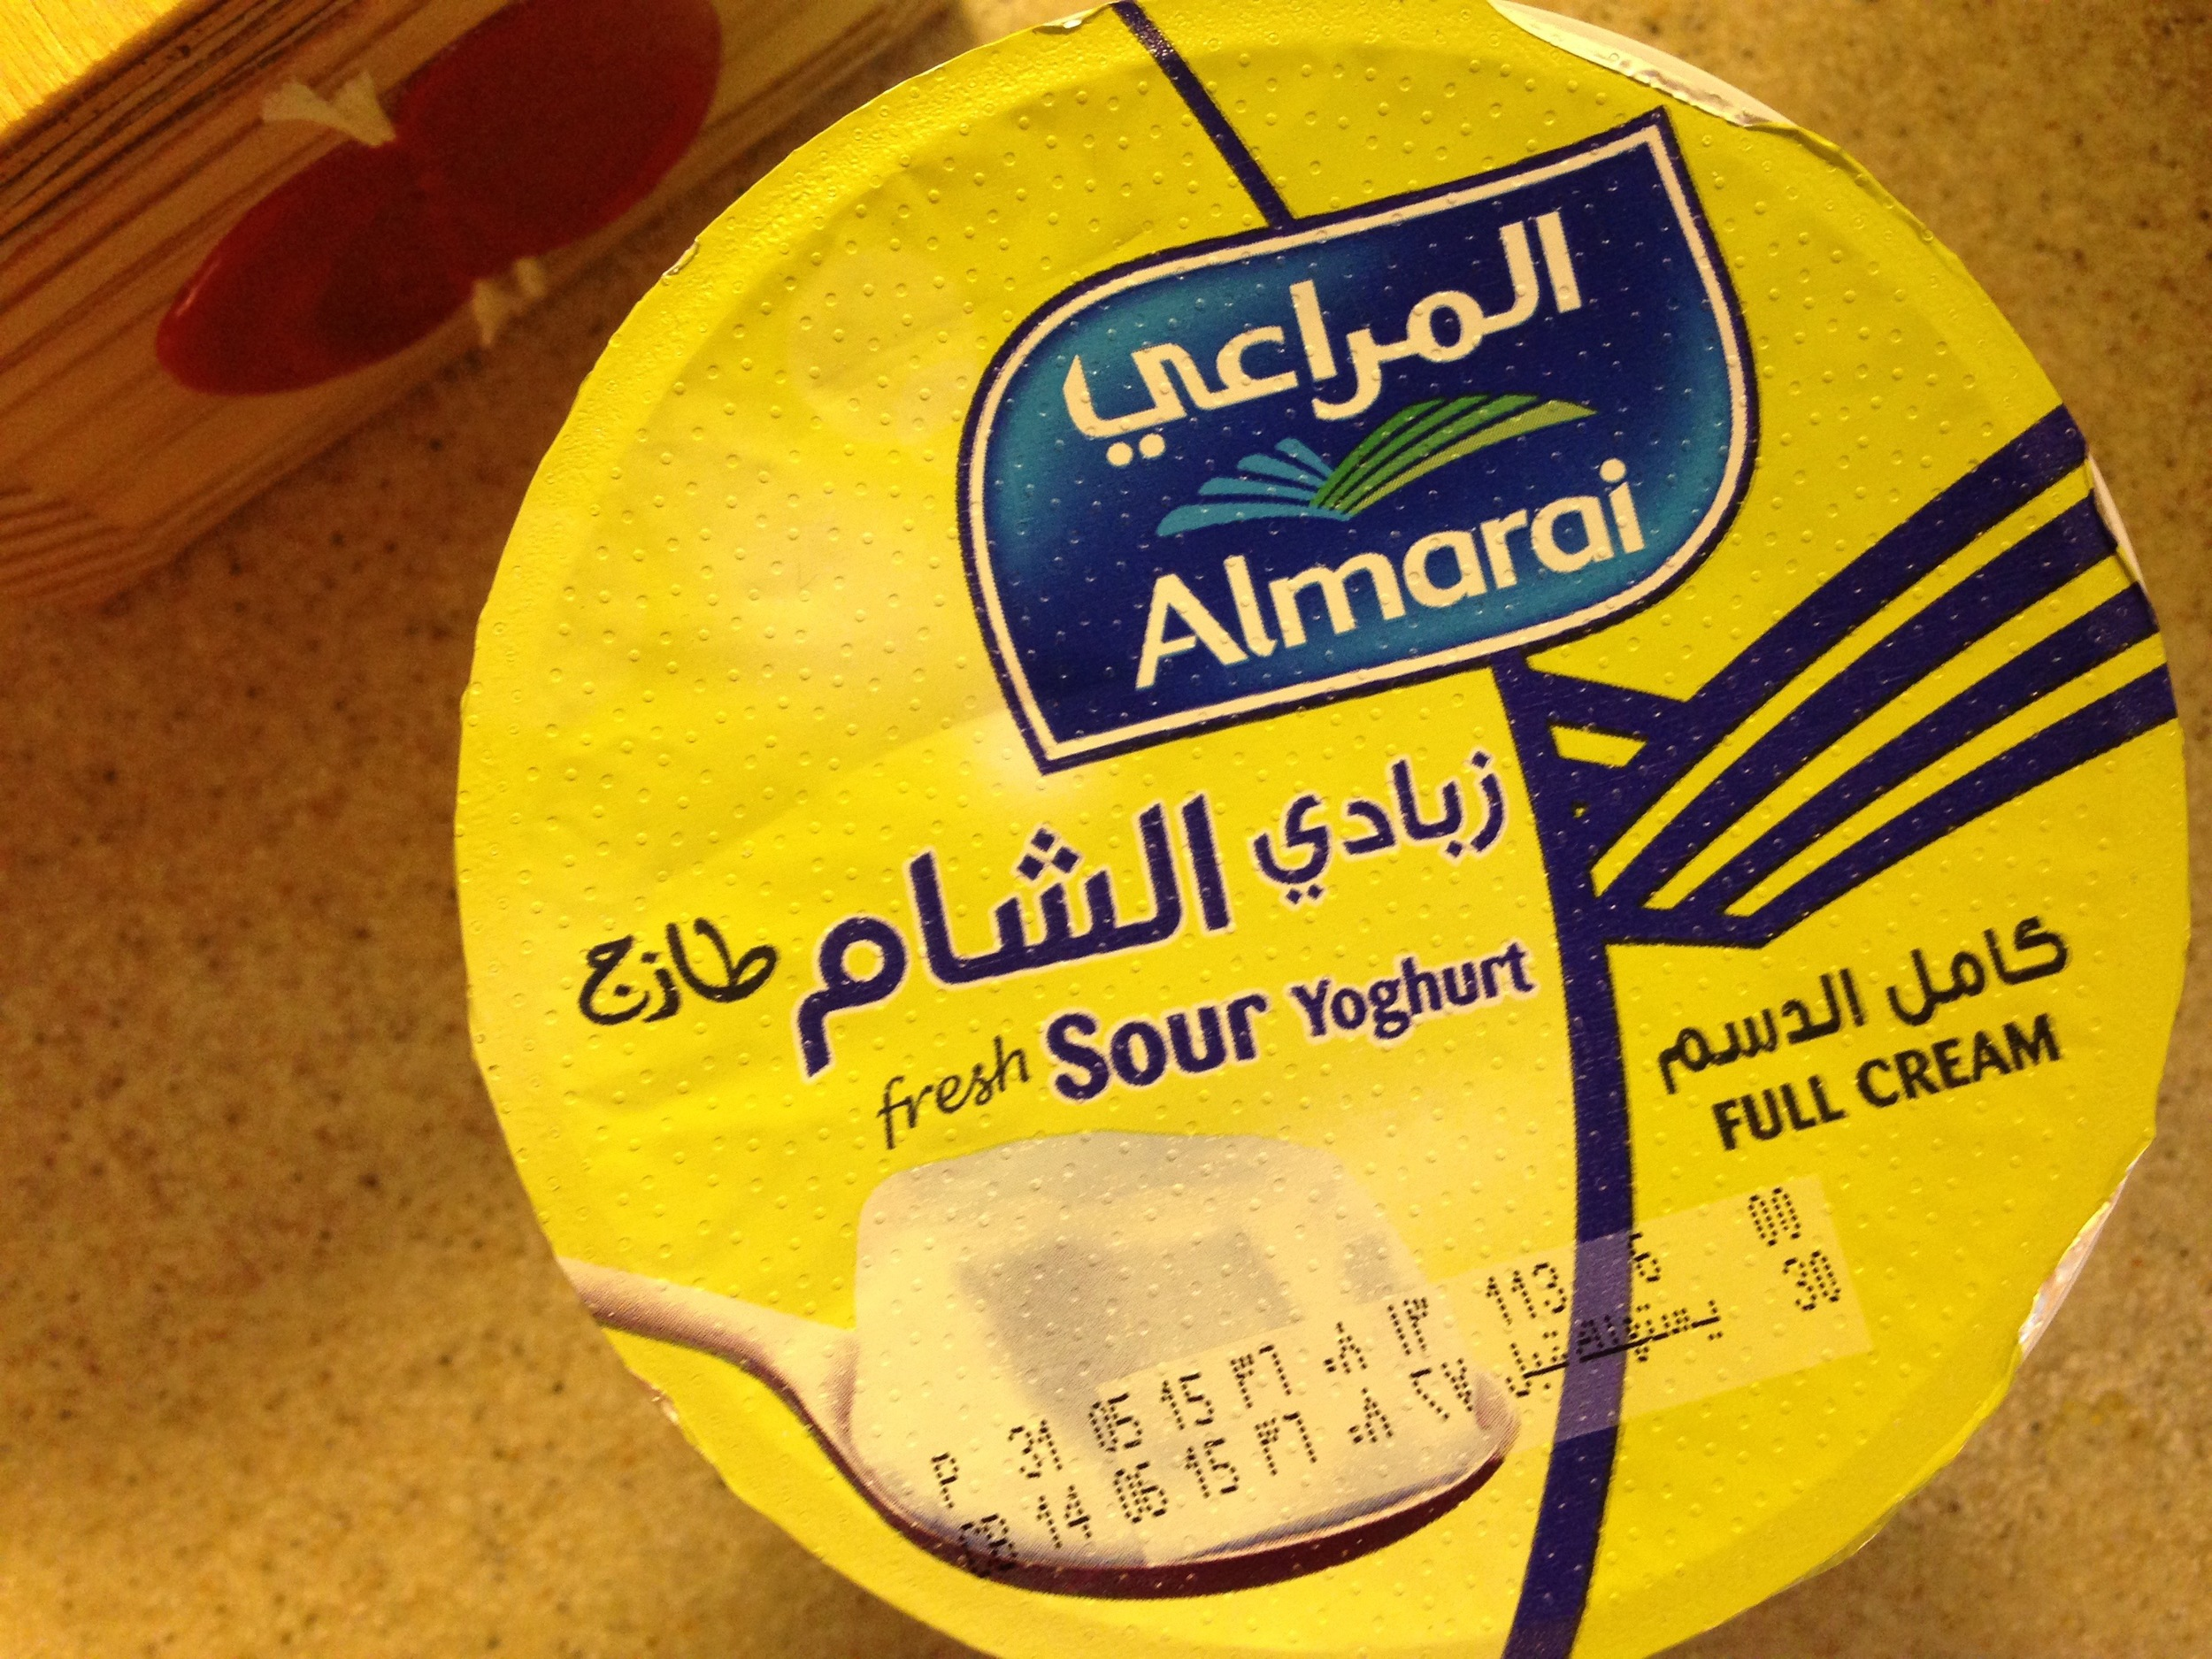 Ever heard of sour yogurt? Me either, until I spotted it today at the grocery store. It was just a bit more tart than regular, plain yogurt--like sour cream, but not as heavy. There are so many fermented dairy options in the Middle East: yogurt, laban (like drinkable yogurt, but a different set of probiotics), three different weights of cooking cream, and I'm probably forgetting others.